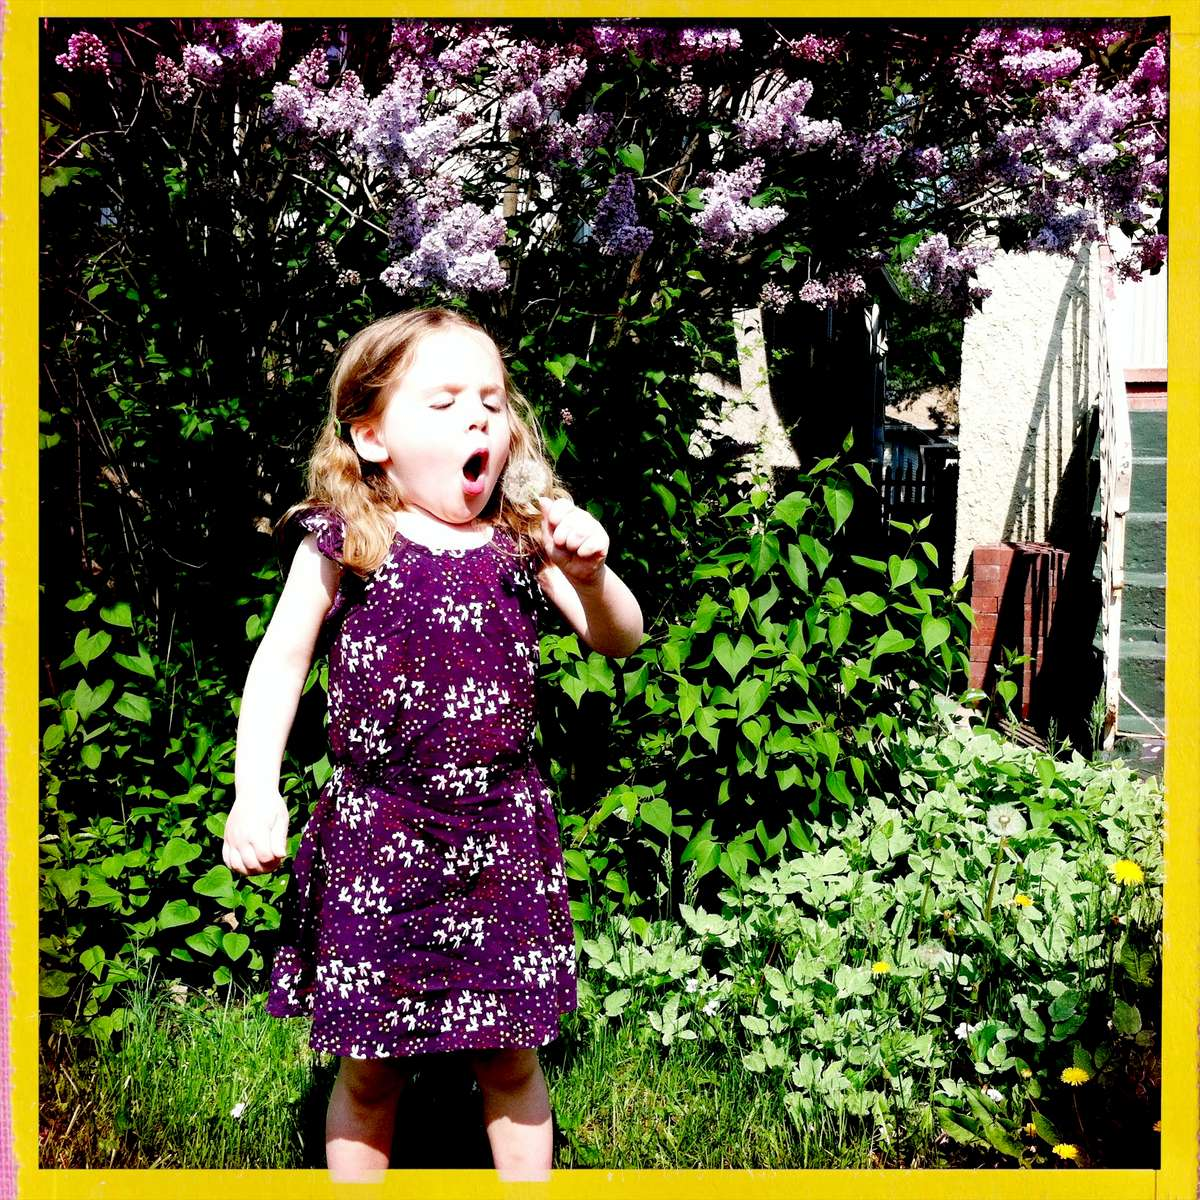 Rosie blows dandelion fluff because the fairies use them like umbrella or parachutes. May 2015.